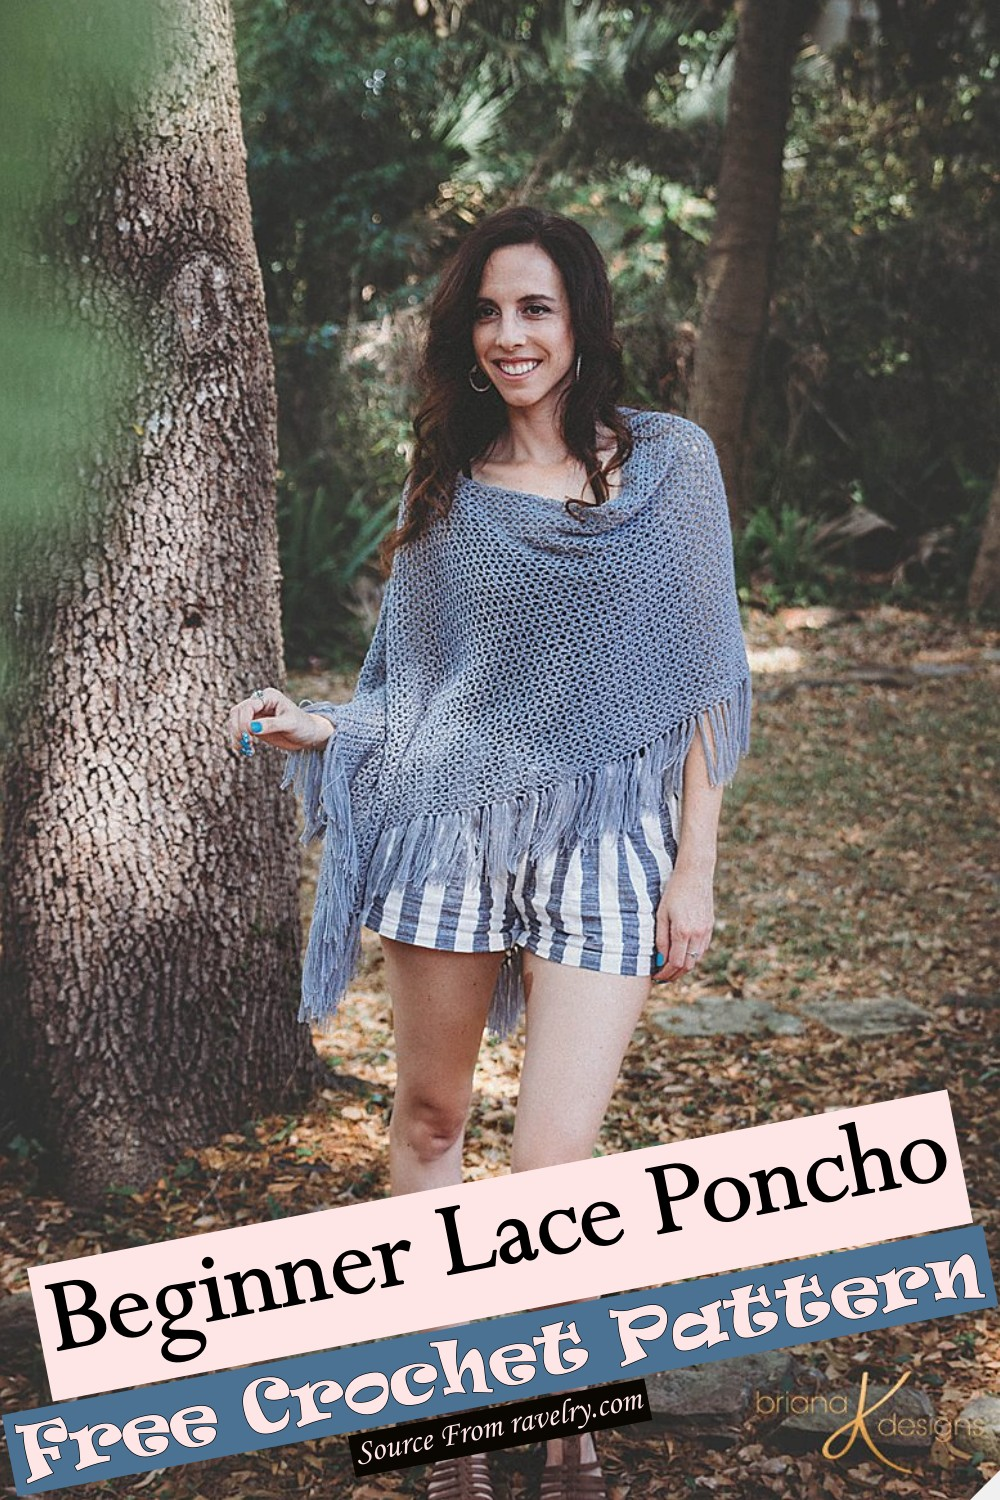 Beginner Lace Poncho